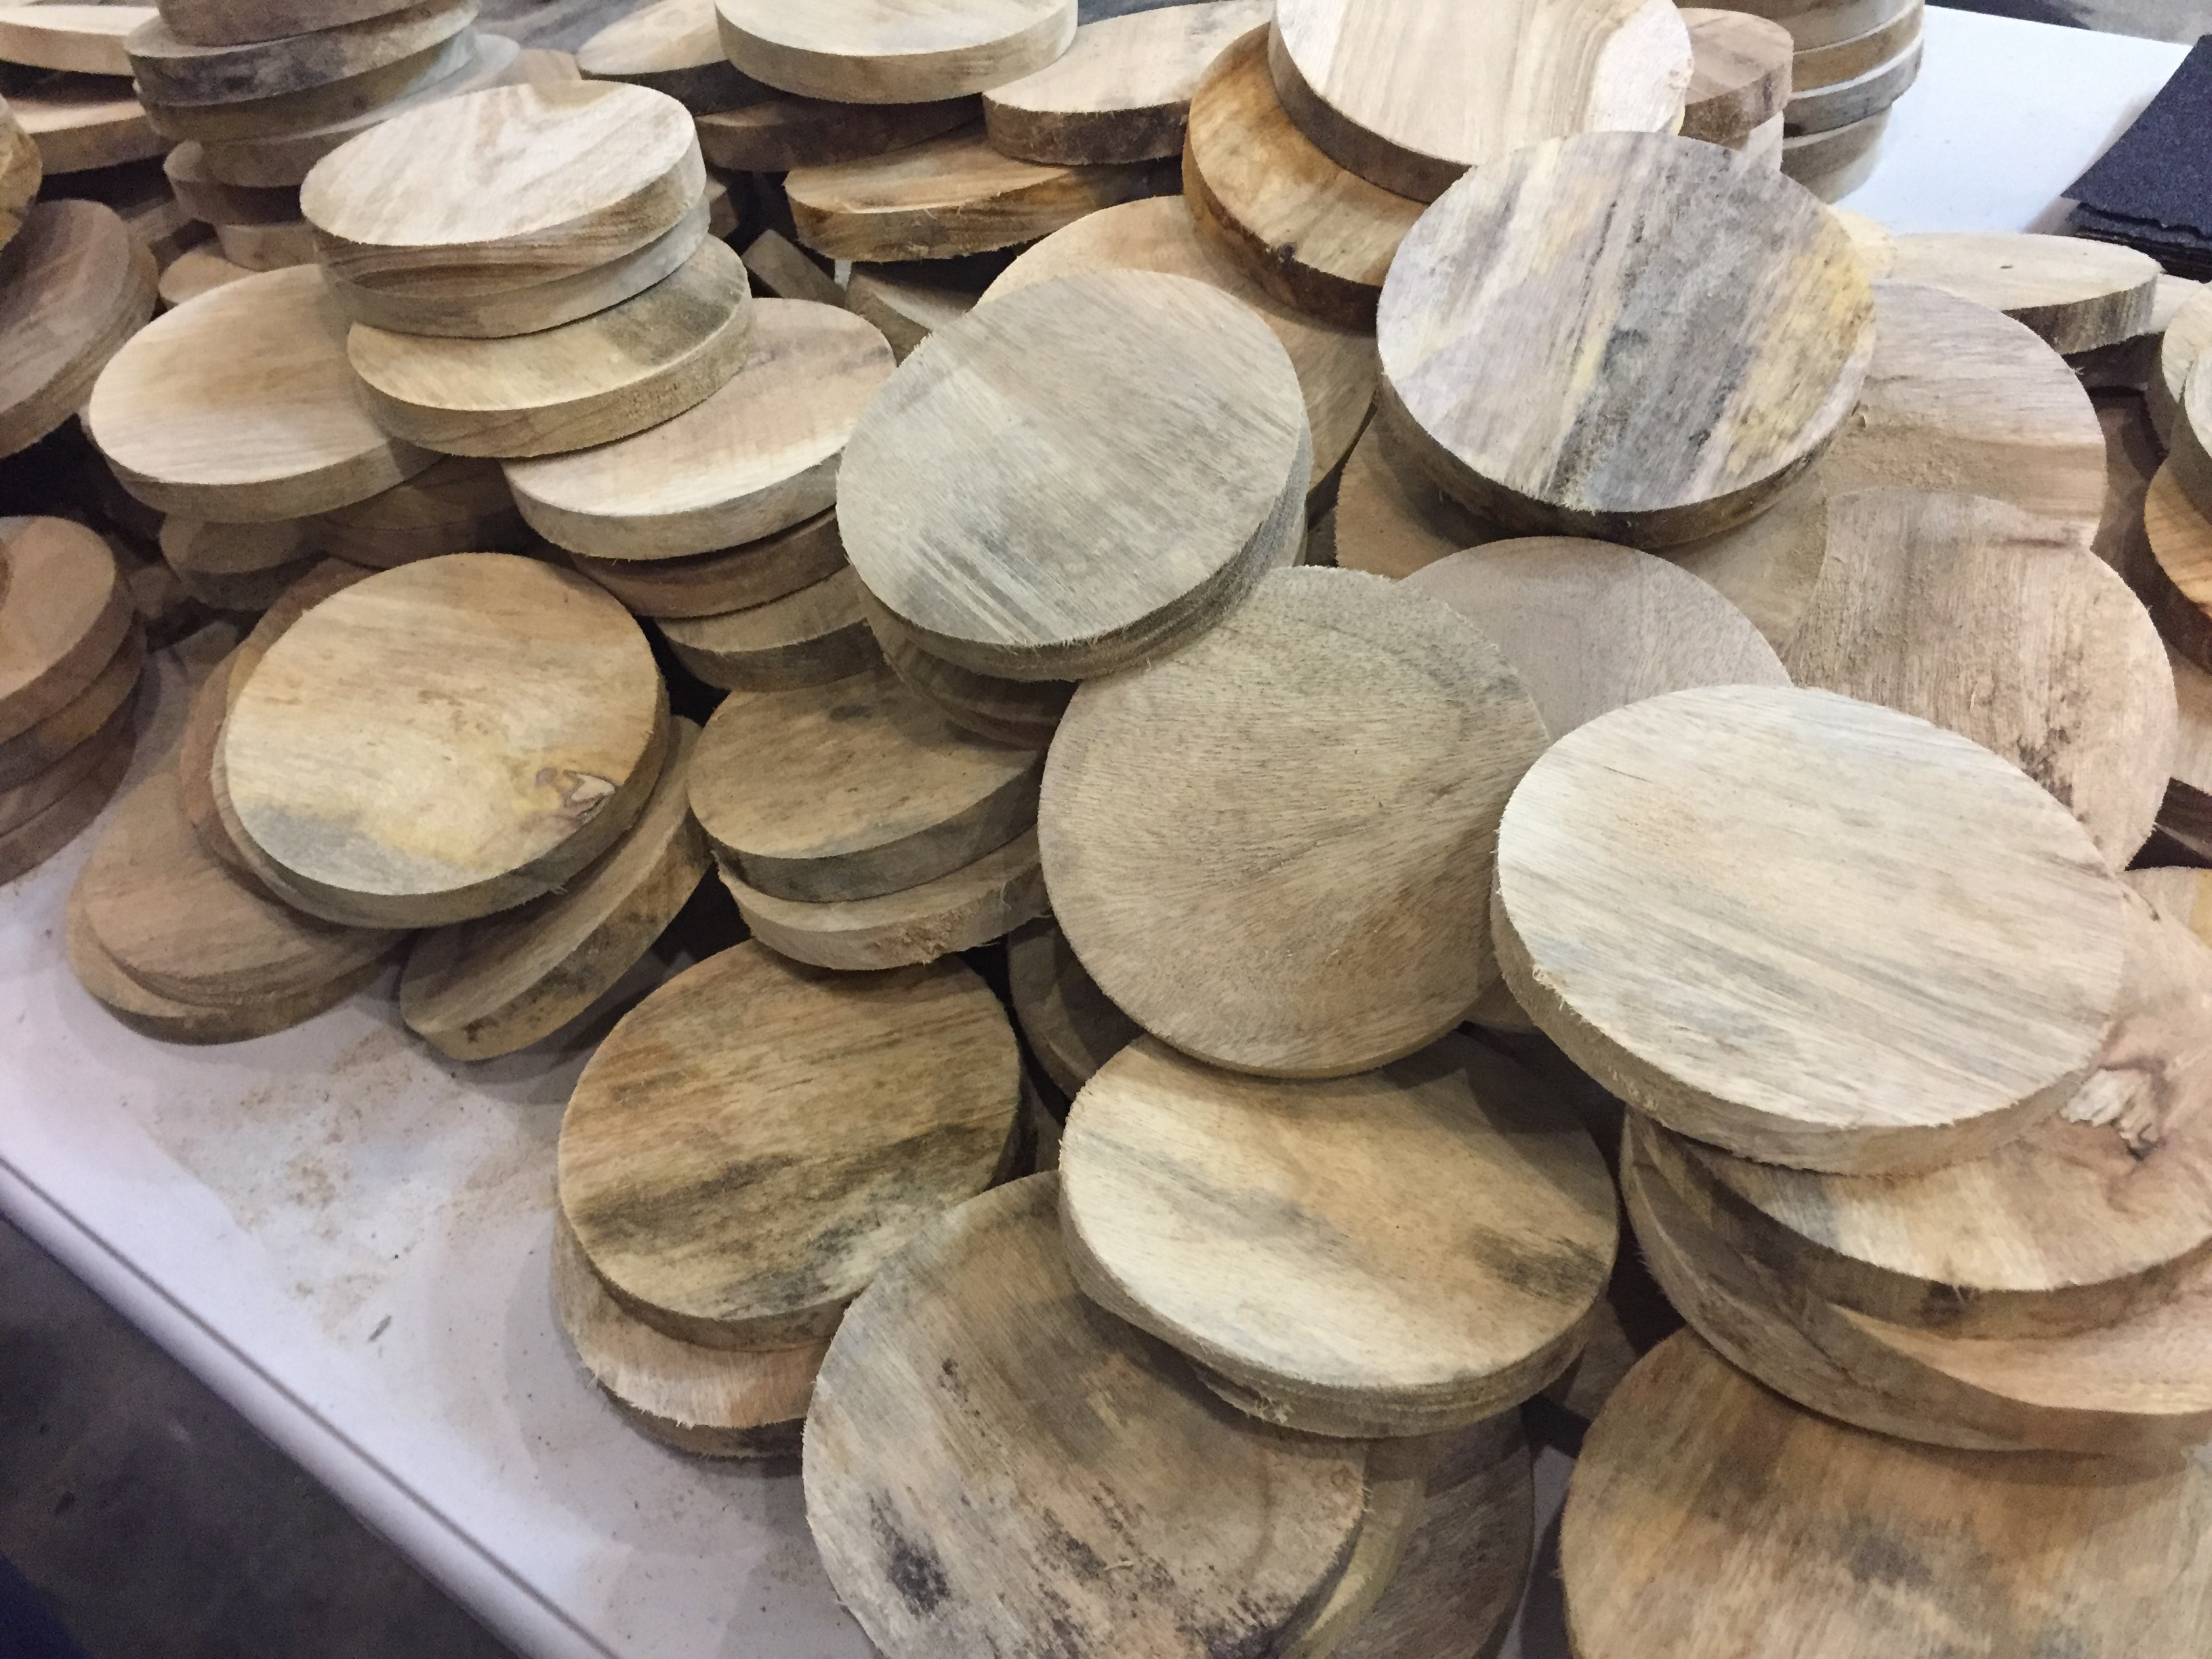 The pest repellent are round pieces of wood.